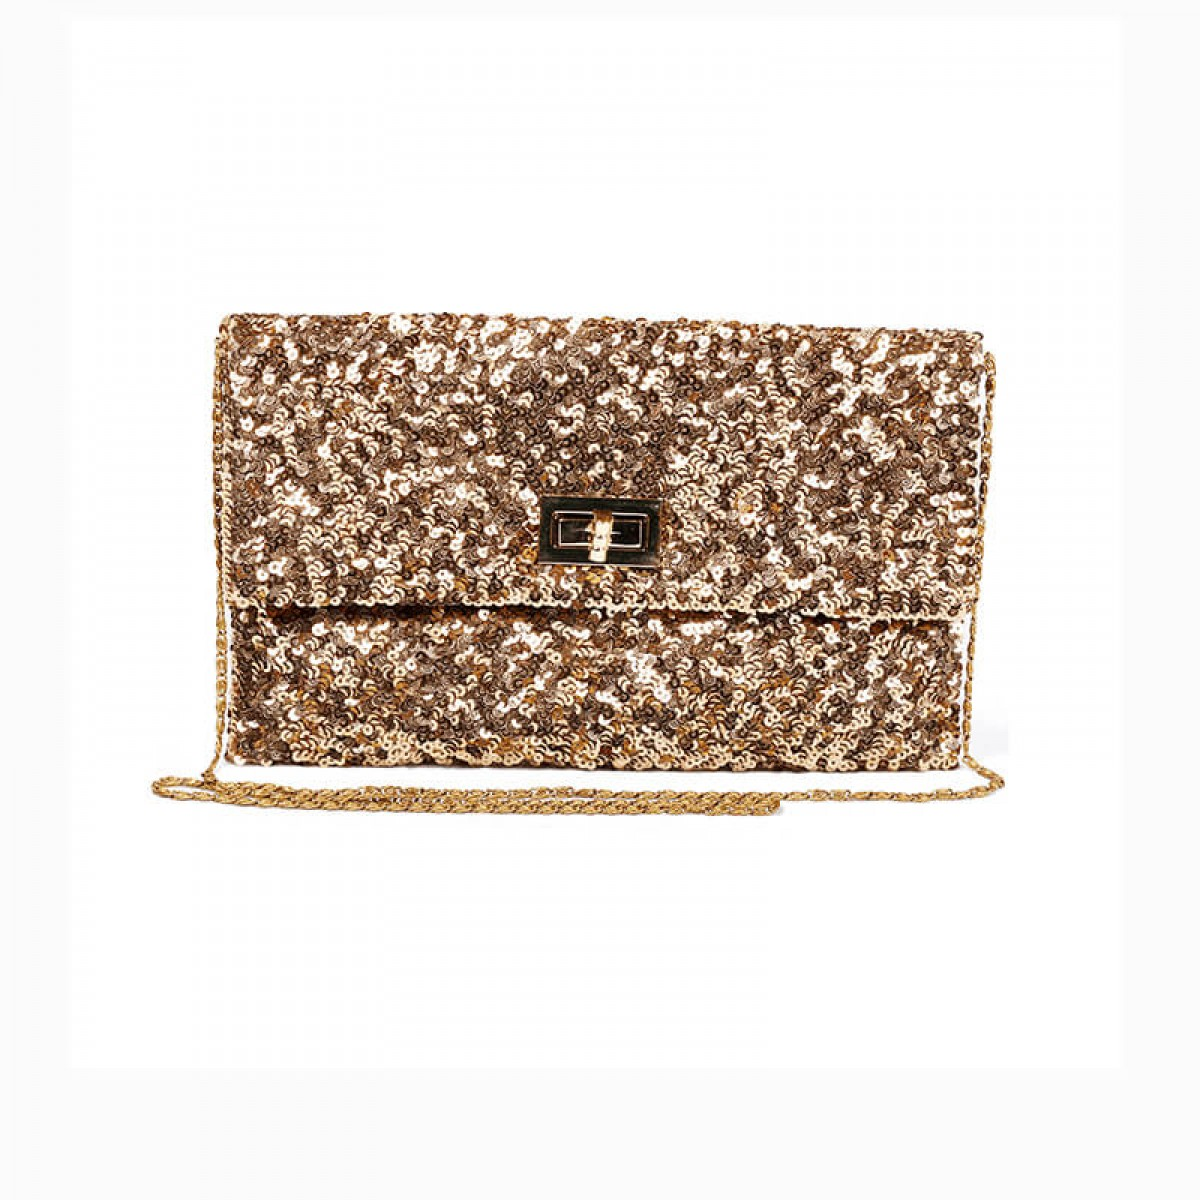 Sequin Clutch Bag - Gold